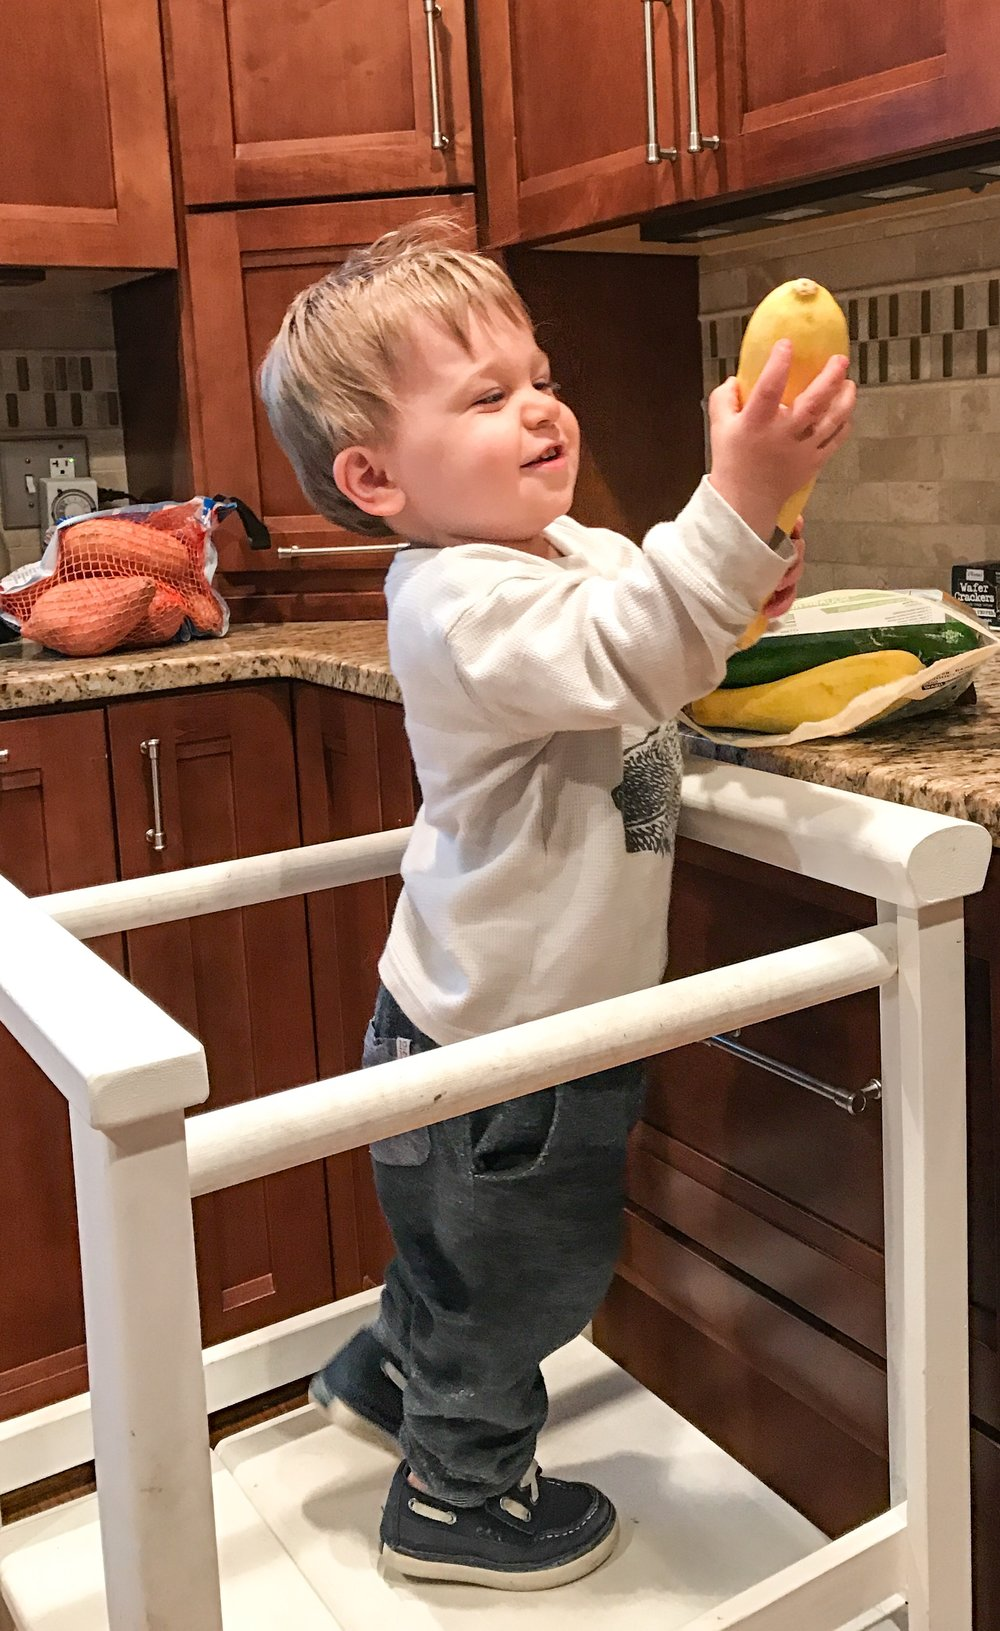 Helping mom to prep dinner while on the learning tower.